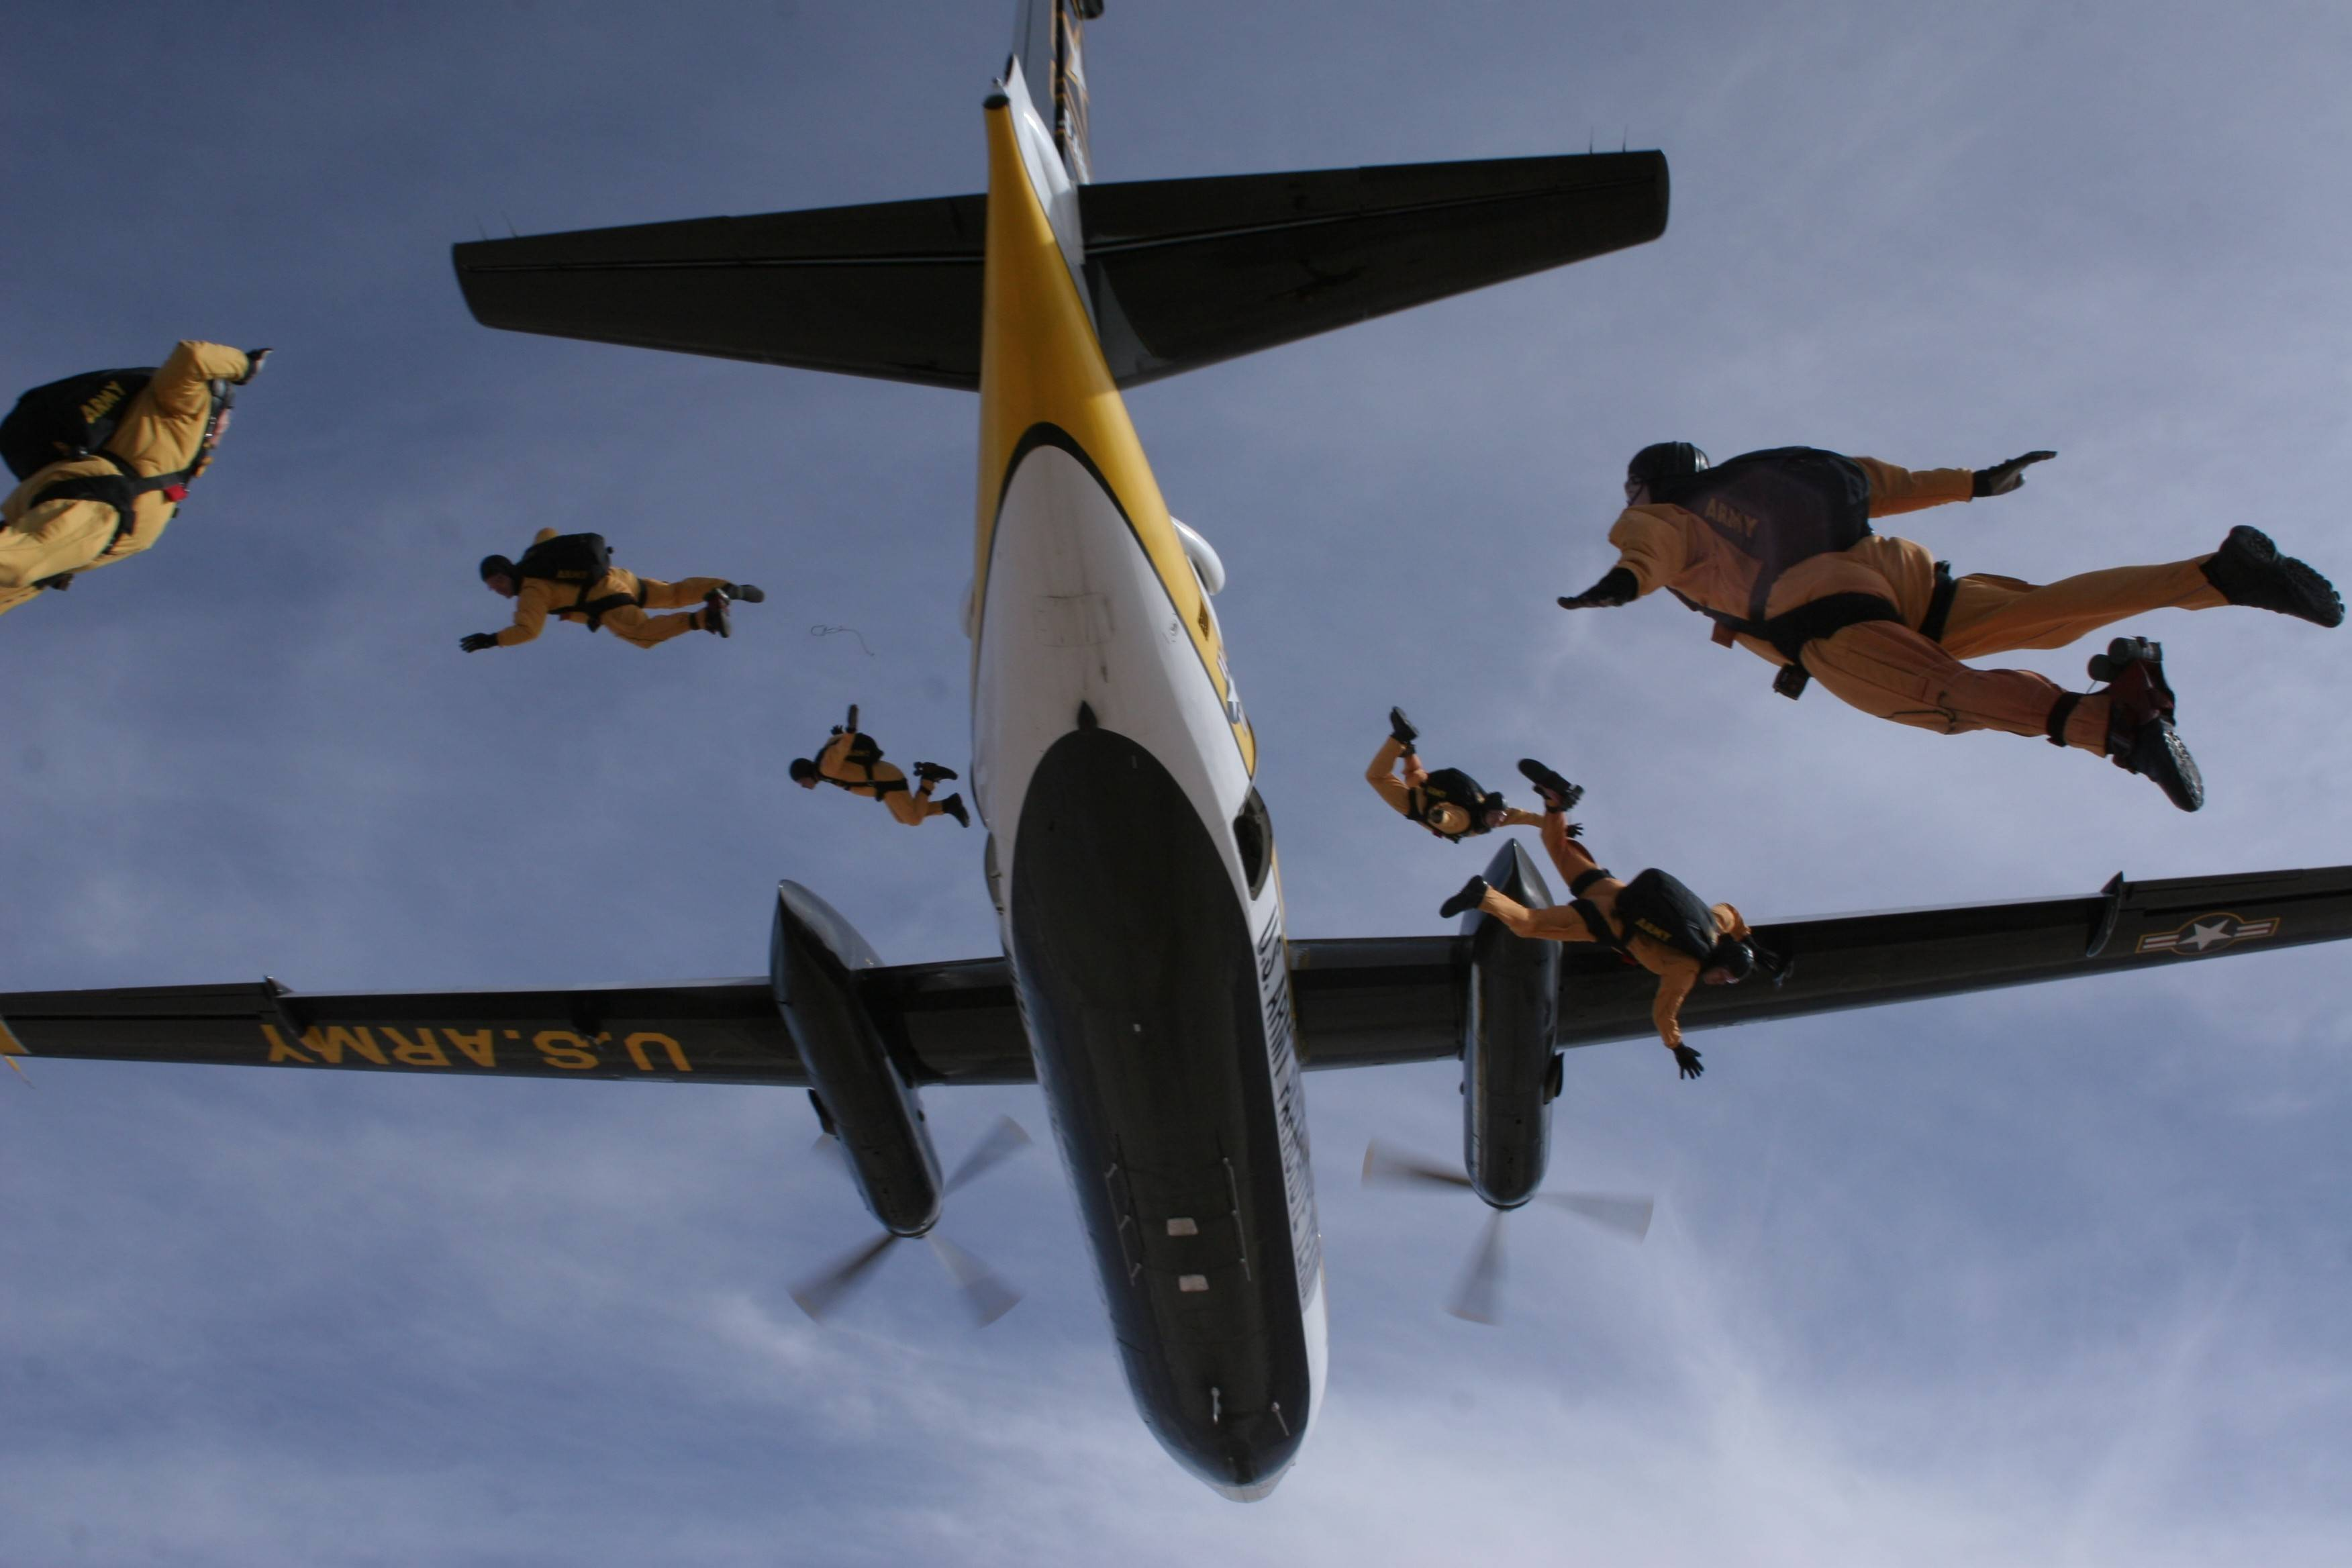 The U.S. Army parachute team Golden Knights brave the heights in order to amaze viewers at the Chicago Air and Water Show this weekend.